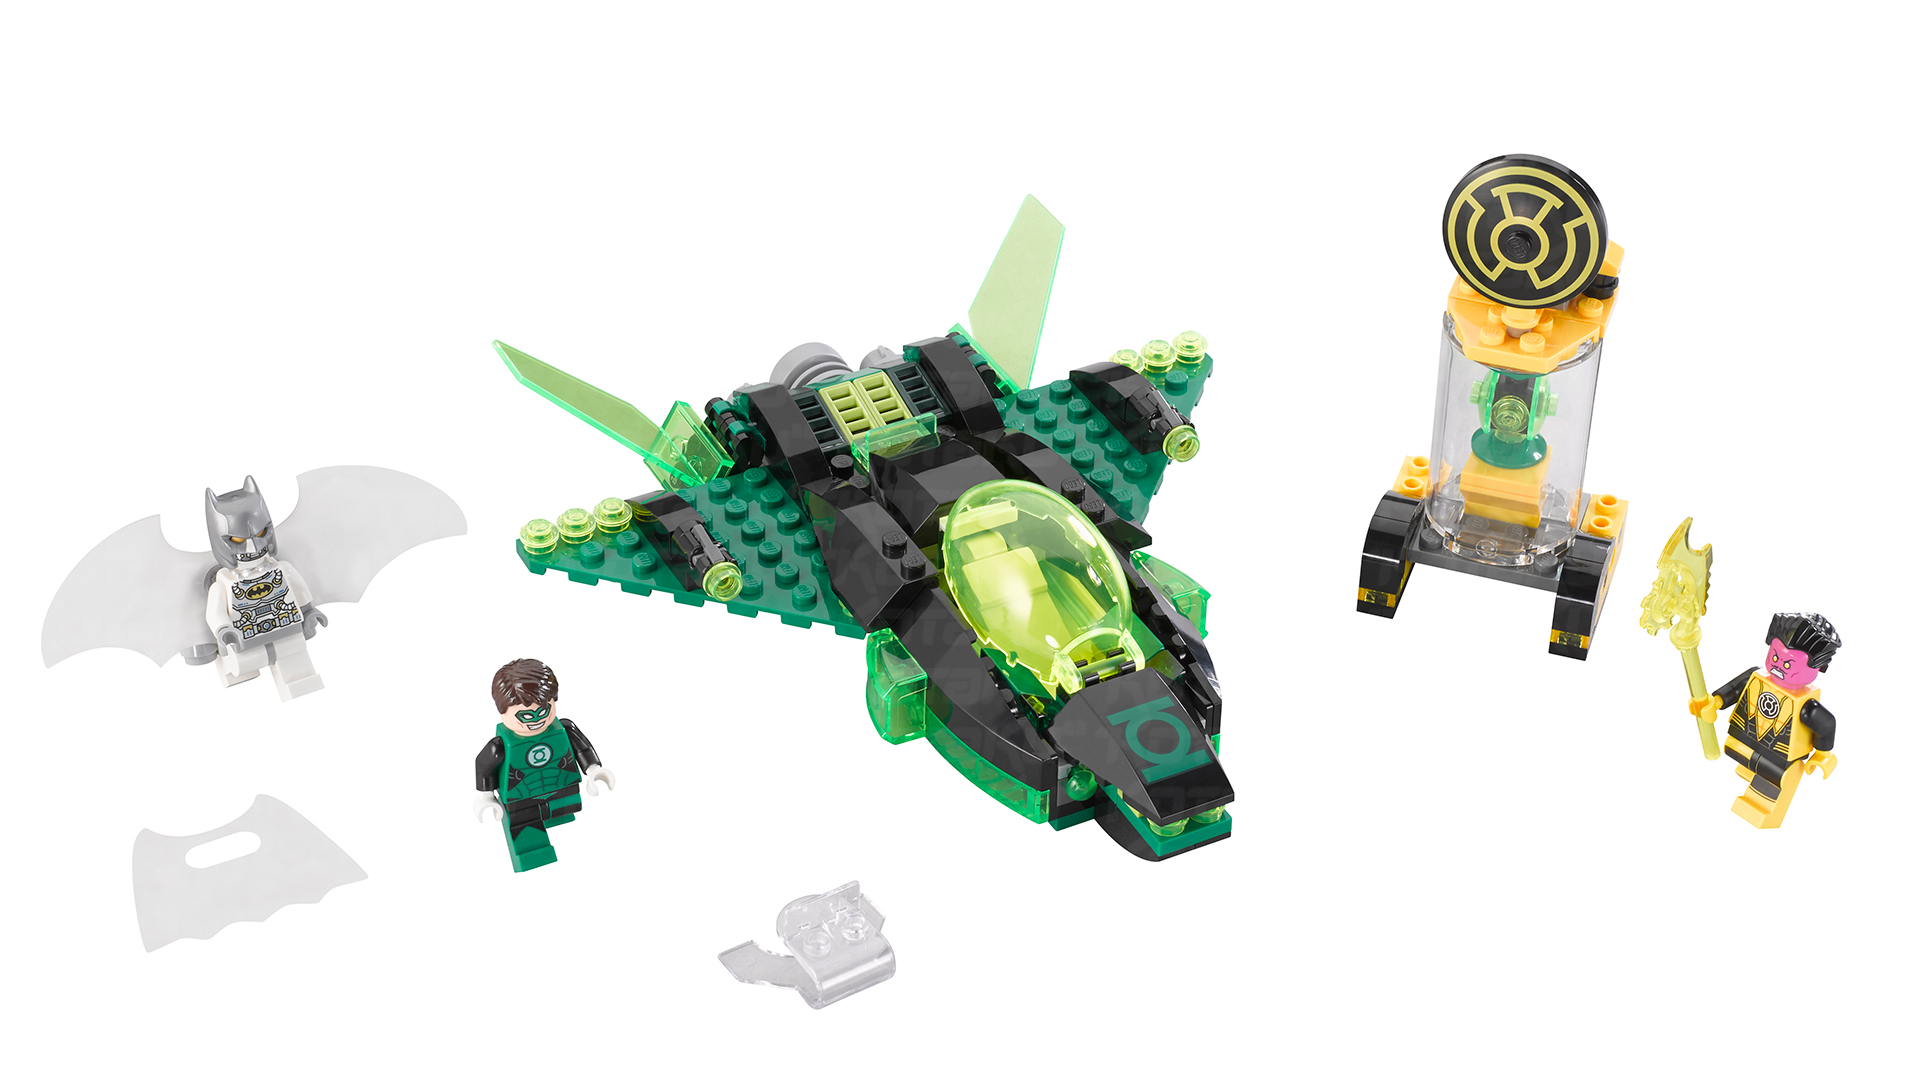 Lego 2015 Set Details Super Heroes Jurassic World Star Wars And More